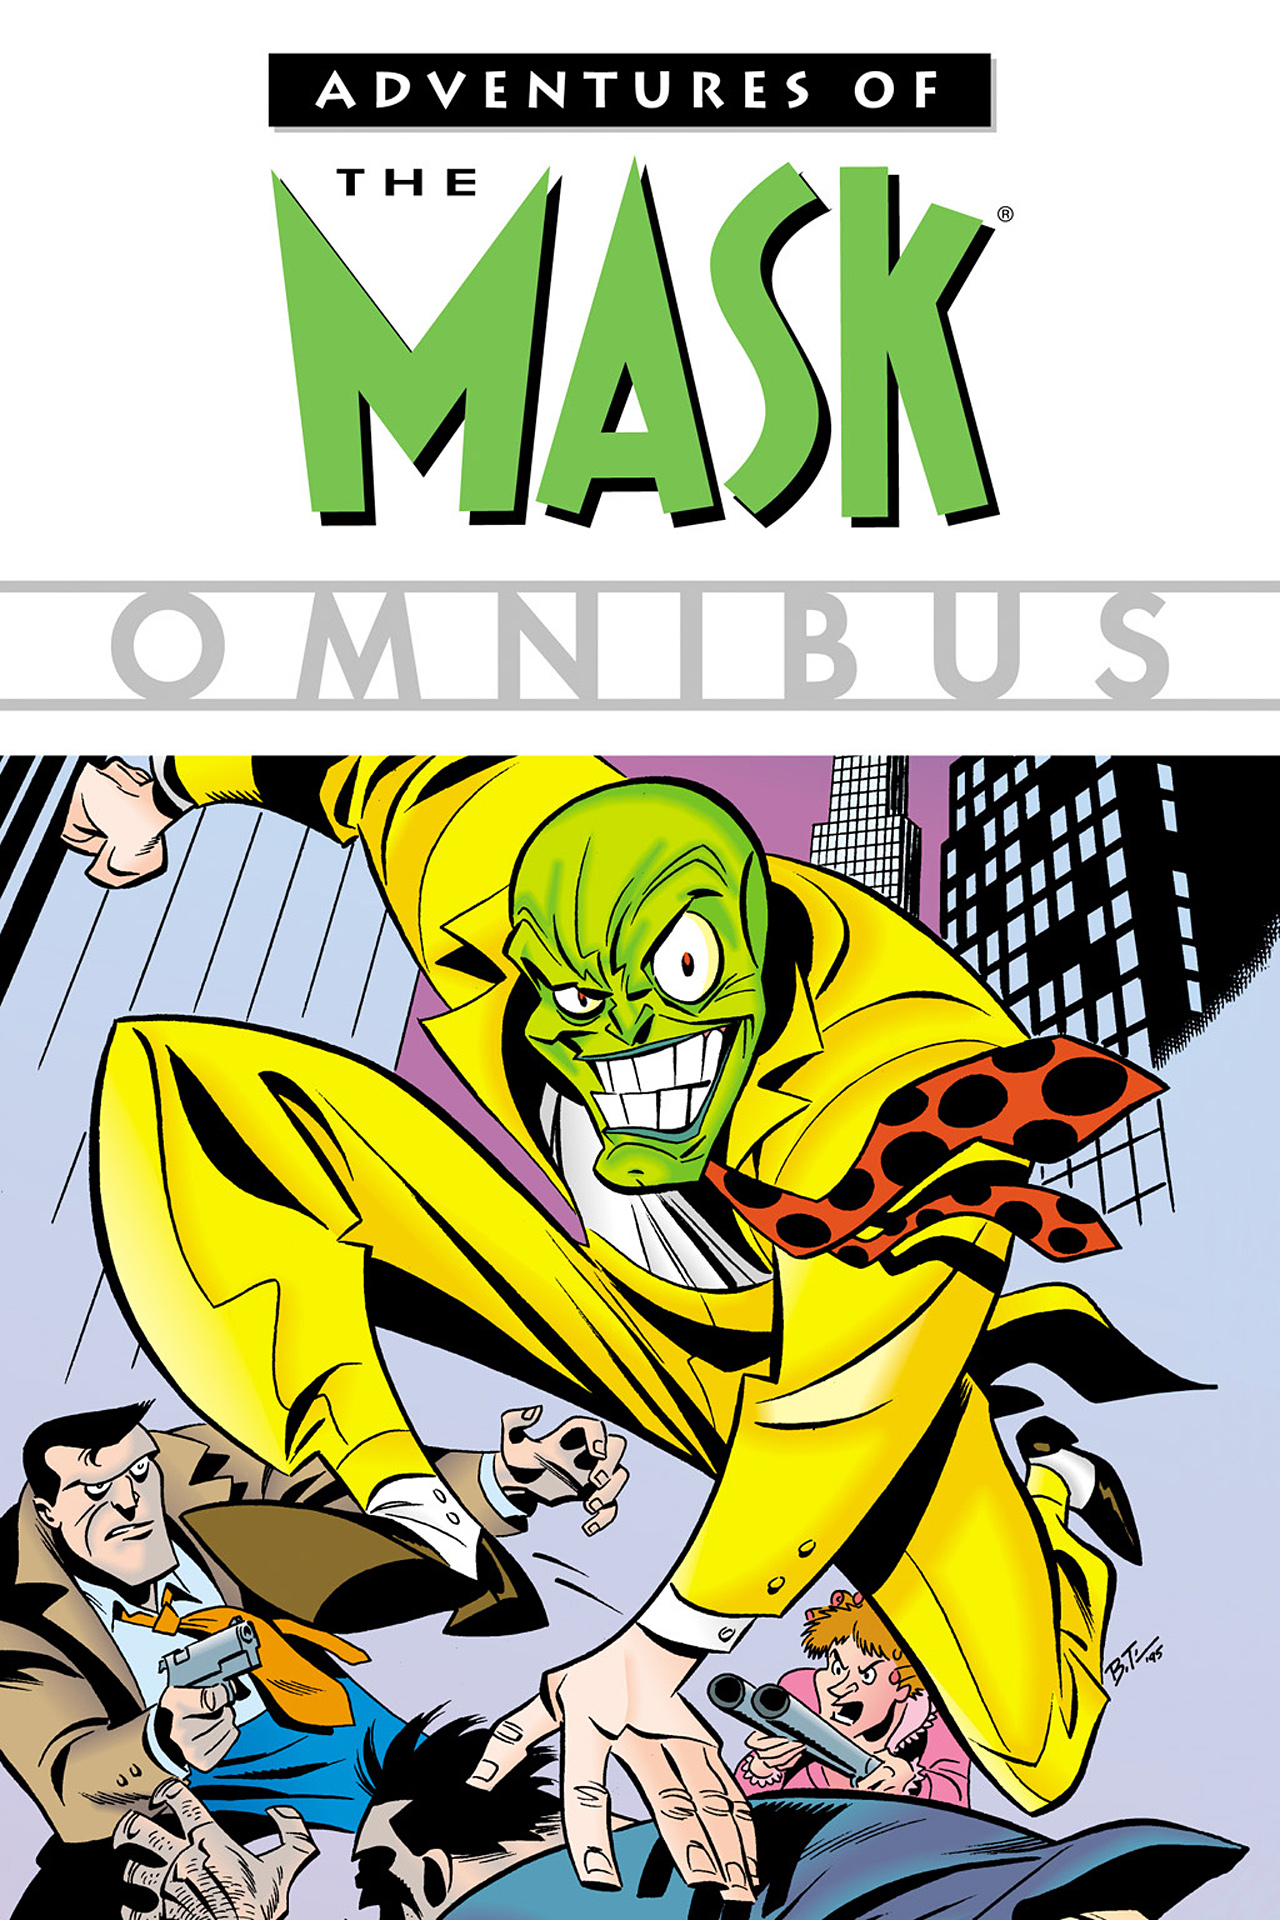 Adventures Of The Mask Omnibus Full Page 1